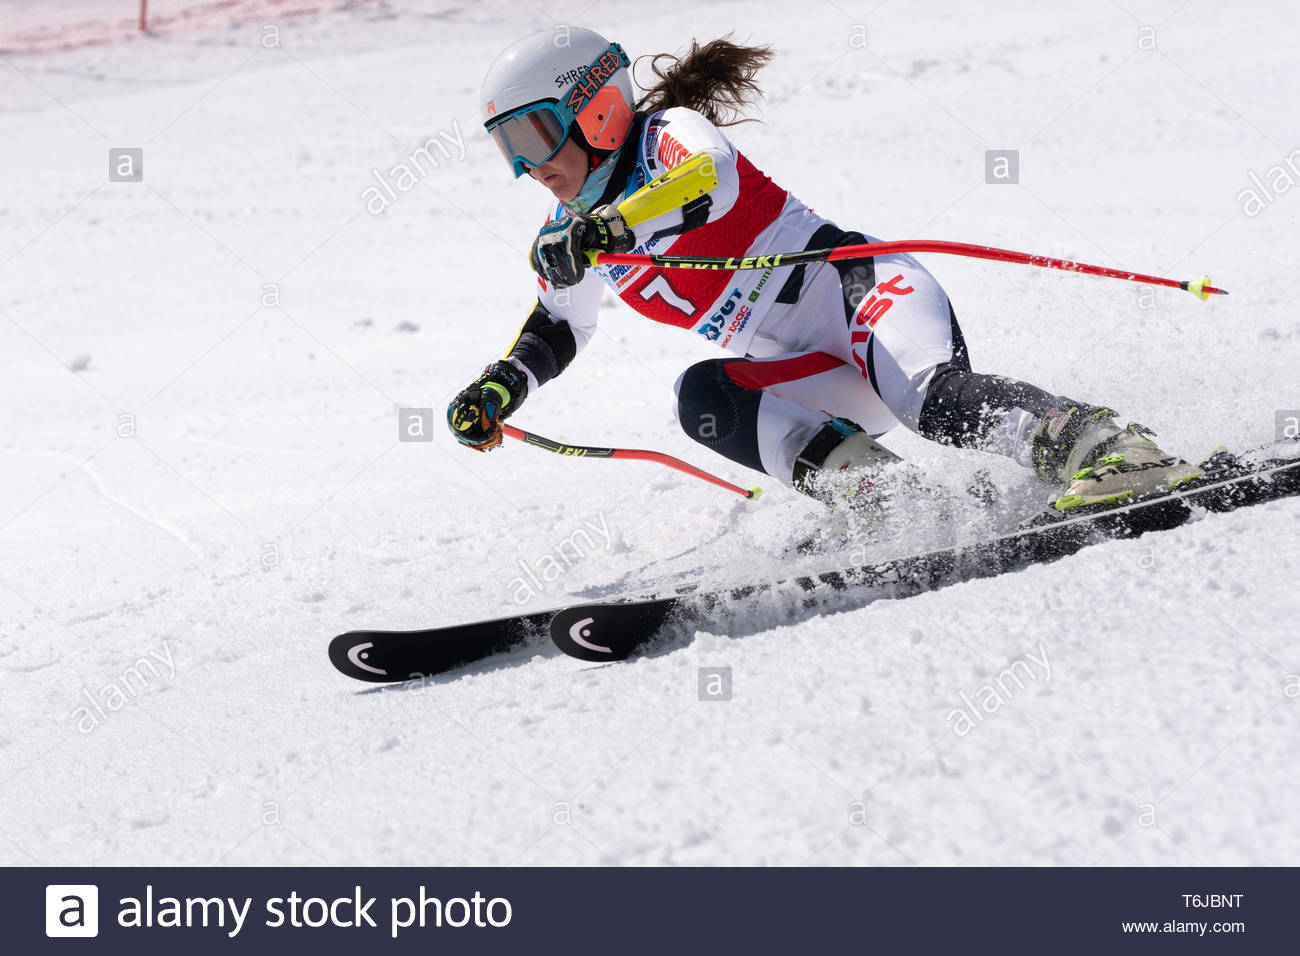 KAMCHATKA PENINSULA, RUSSIAN FEDERATION - APR 1, 2019: Mountain skier Popova Ekaterina (Kamchatka Peninsula) skiing down snowy mountain slope. Russian - Stock Image